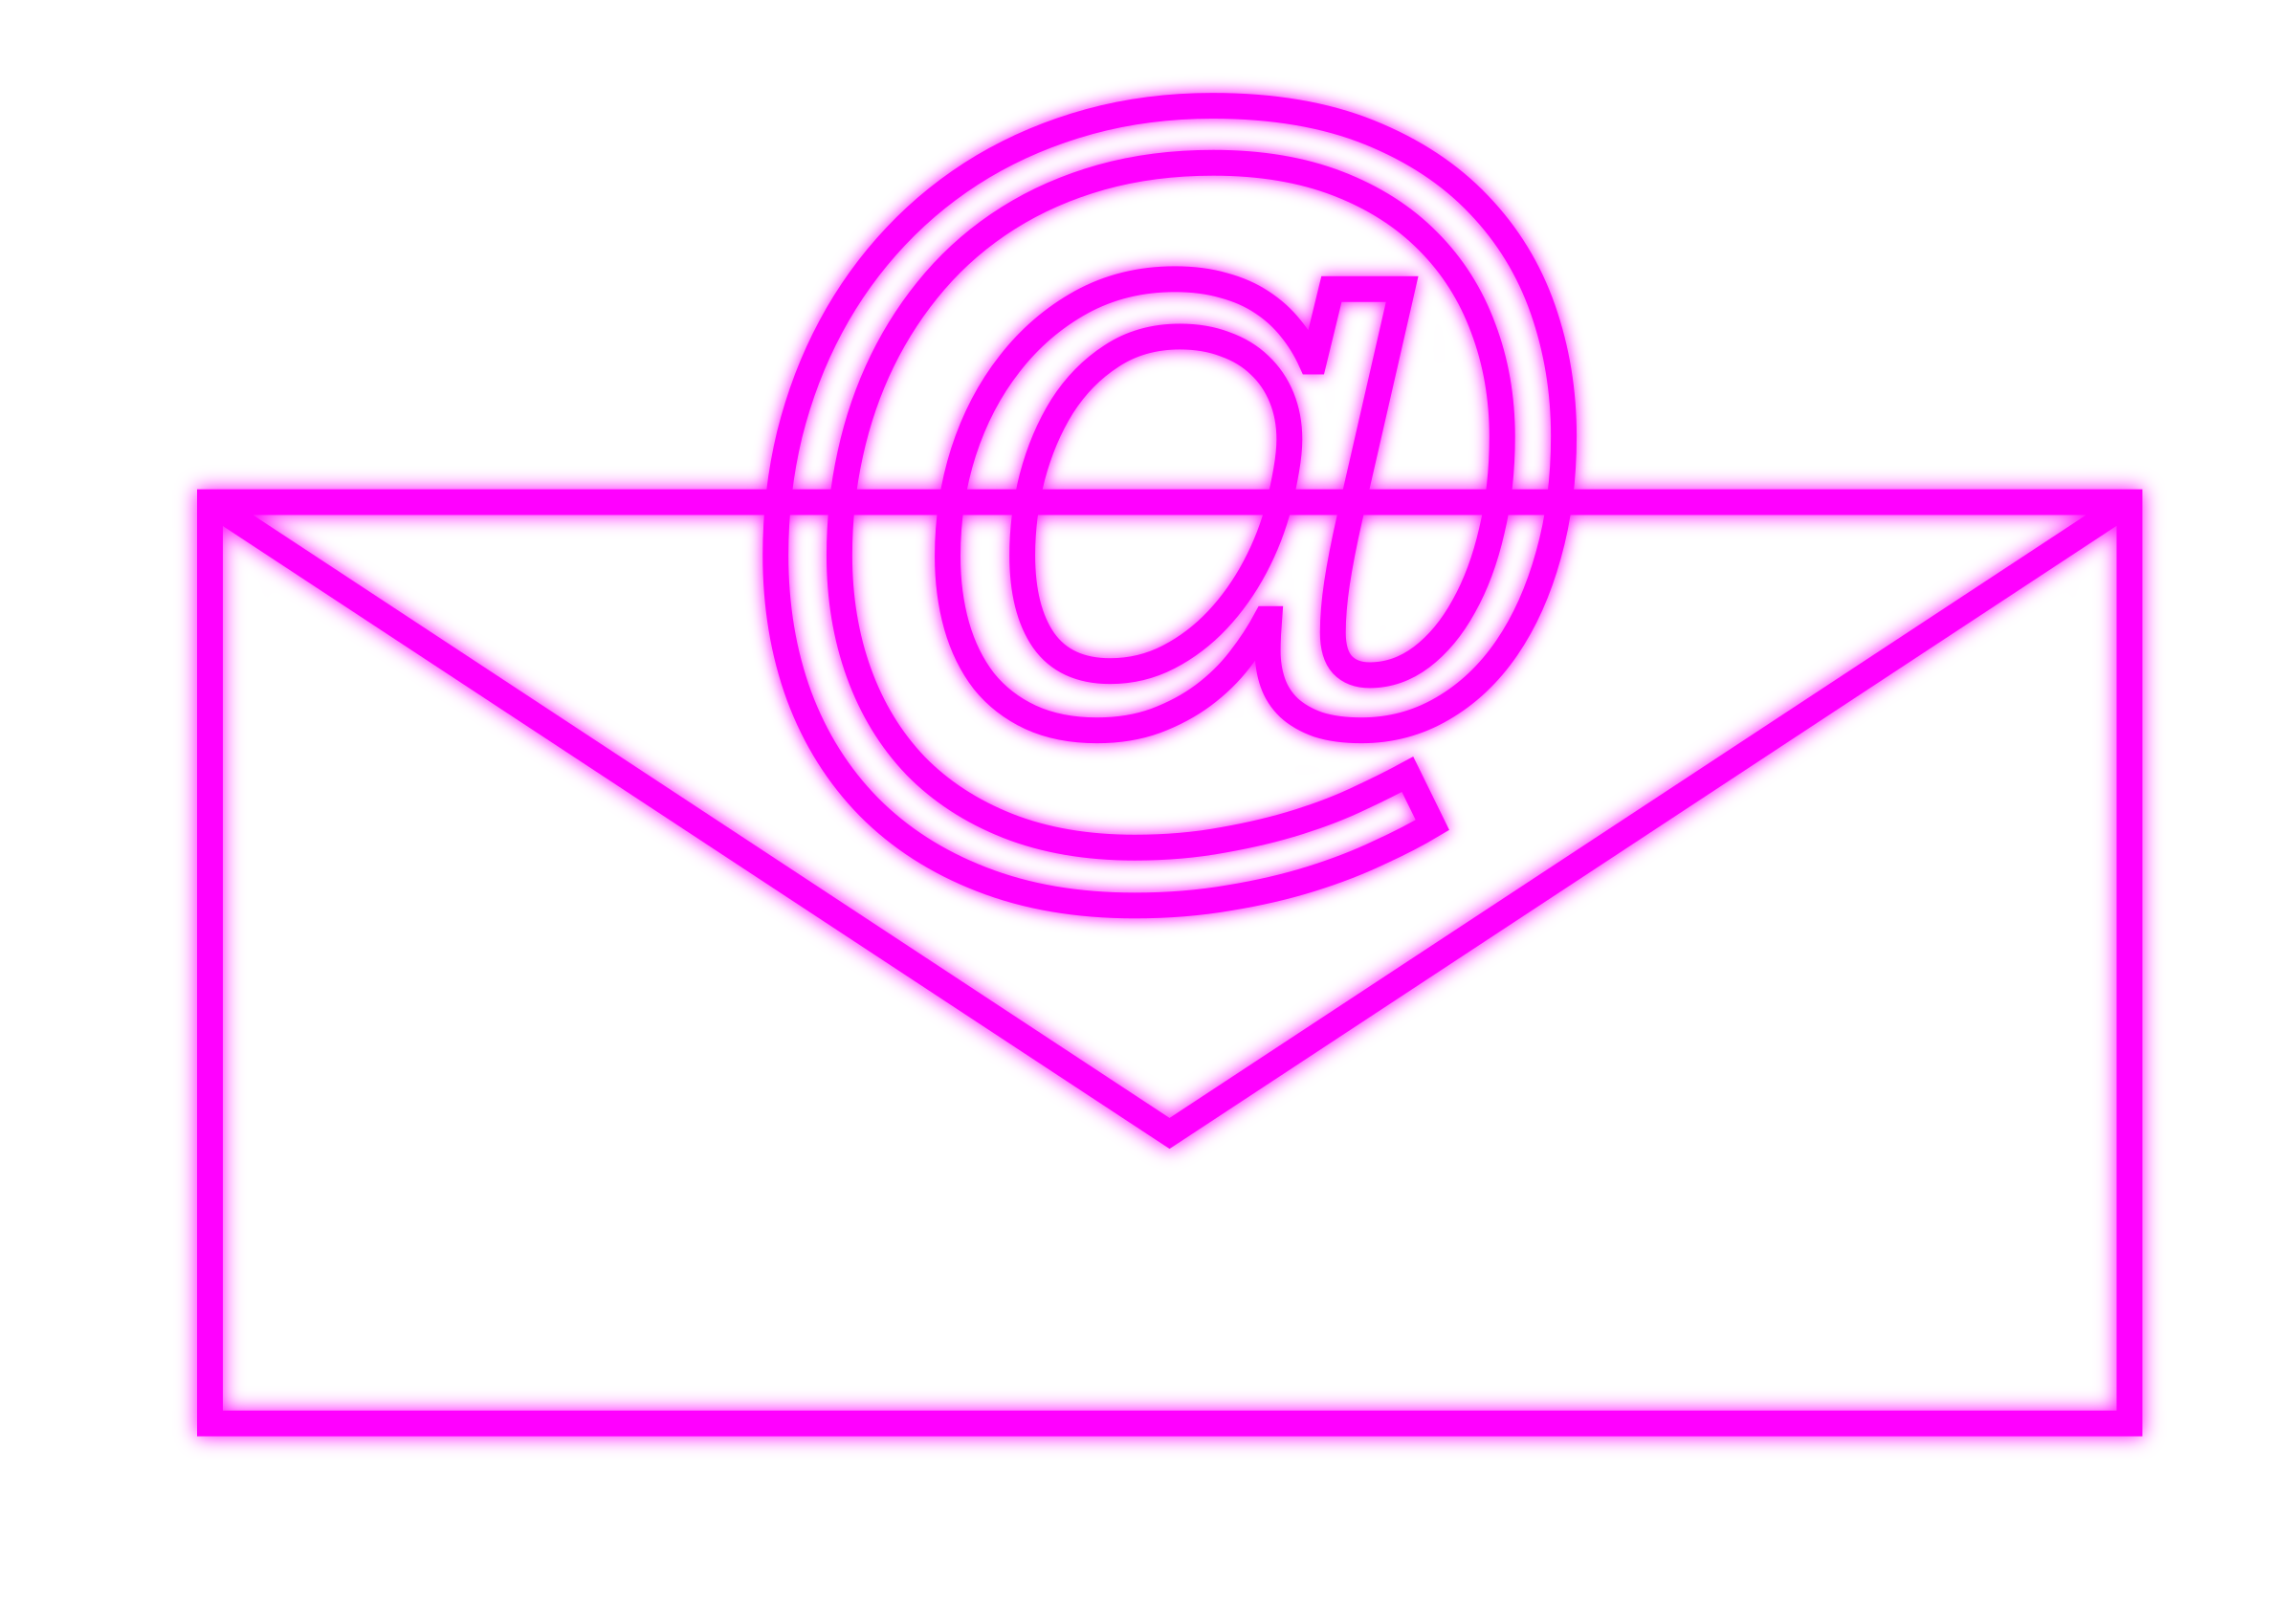 Email Rectangle_3 by gezegen